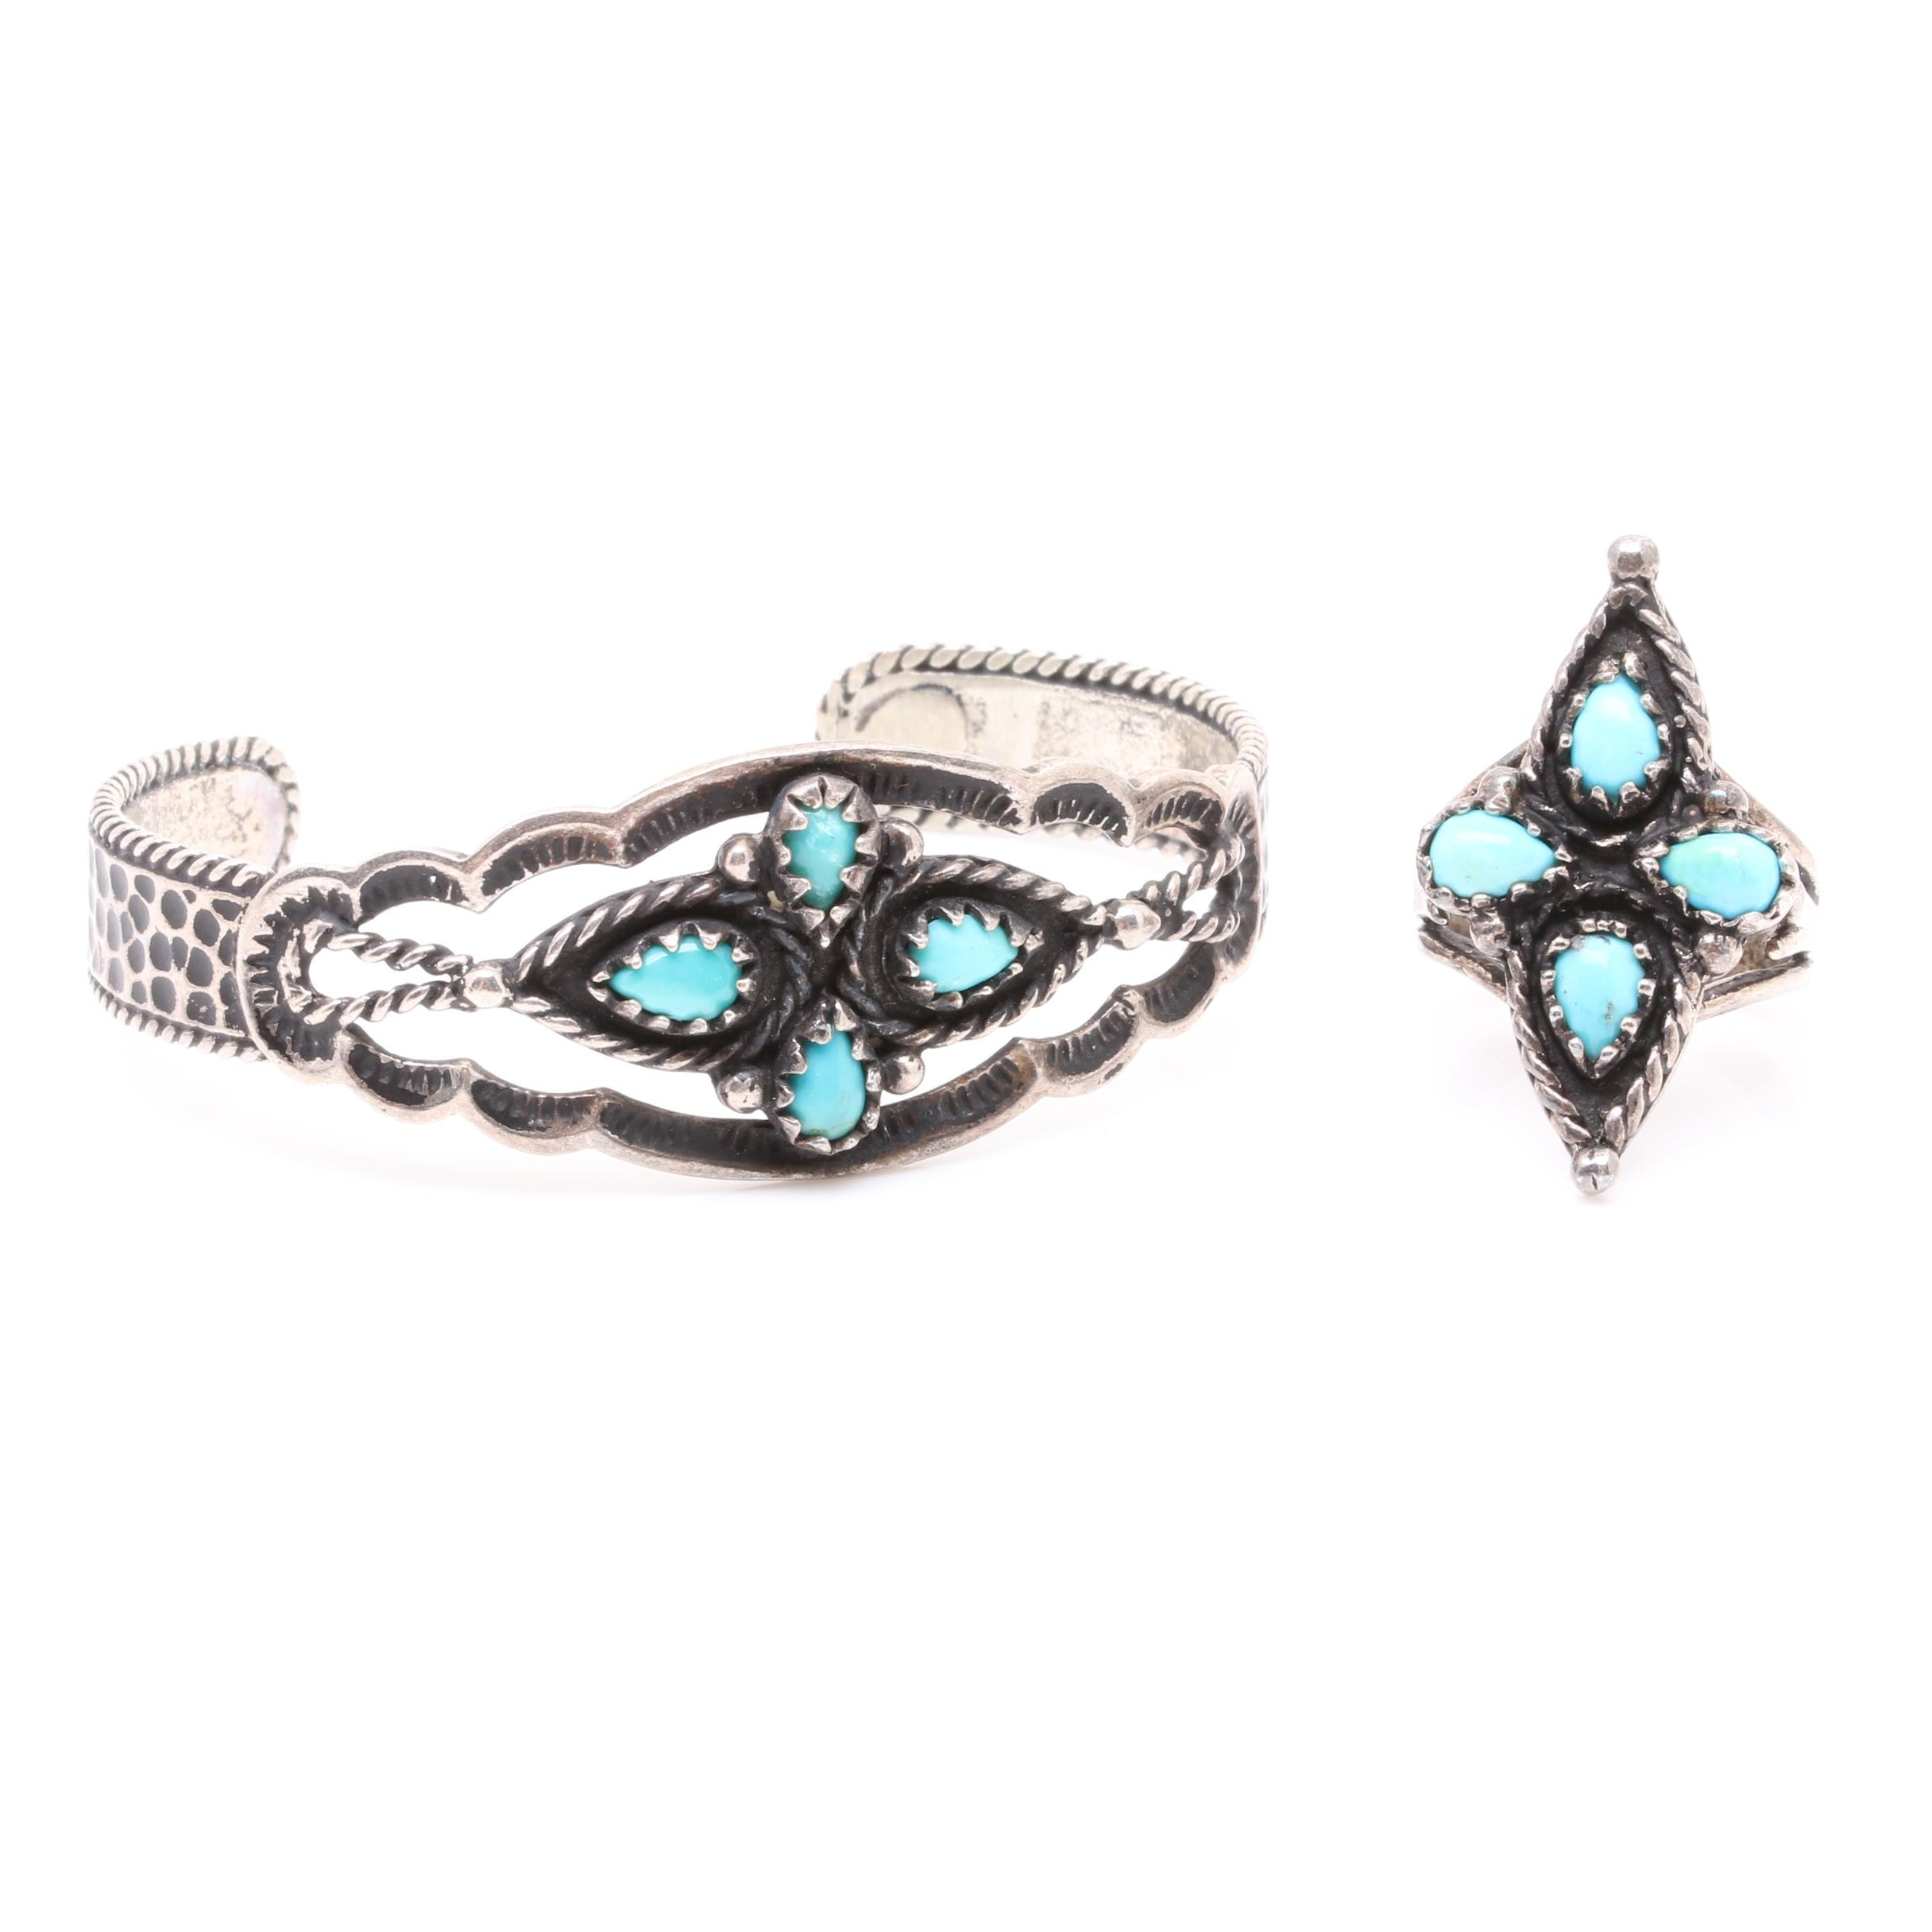 Southwestern Style Sterling Silver Turquoise Cuff Bracelet and Ring